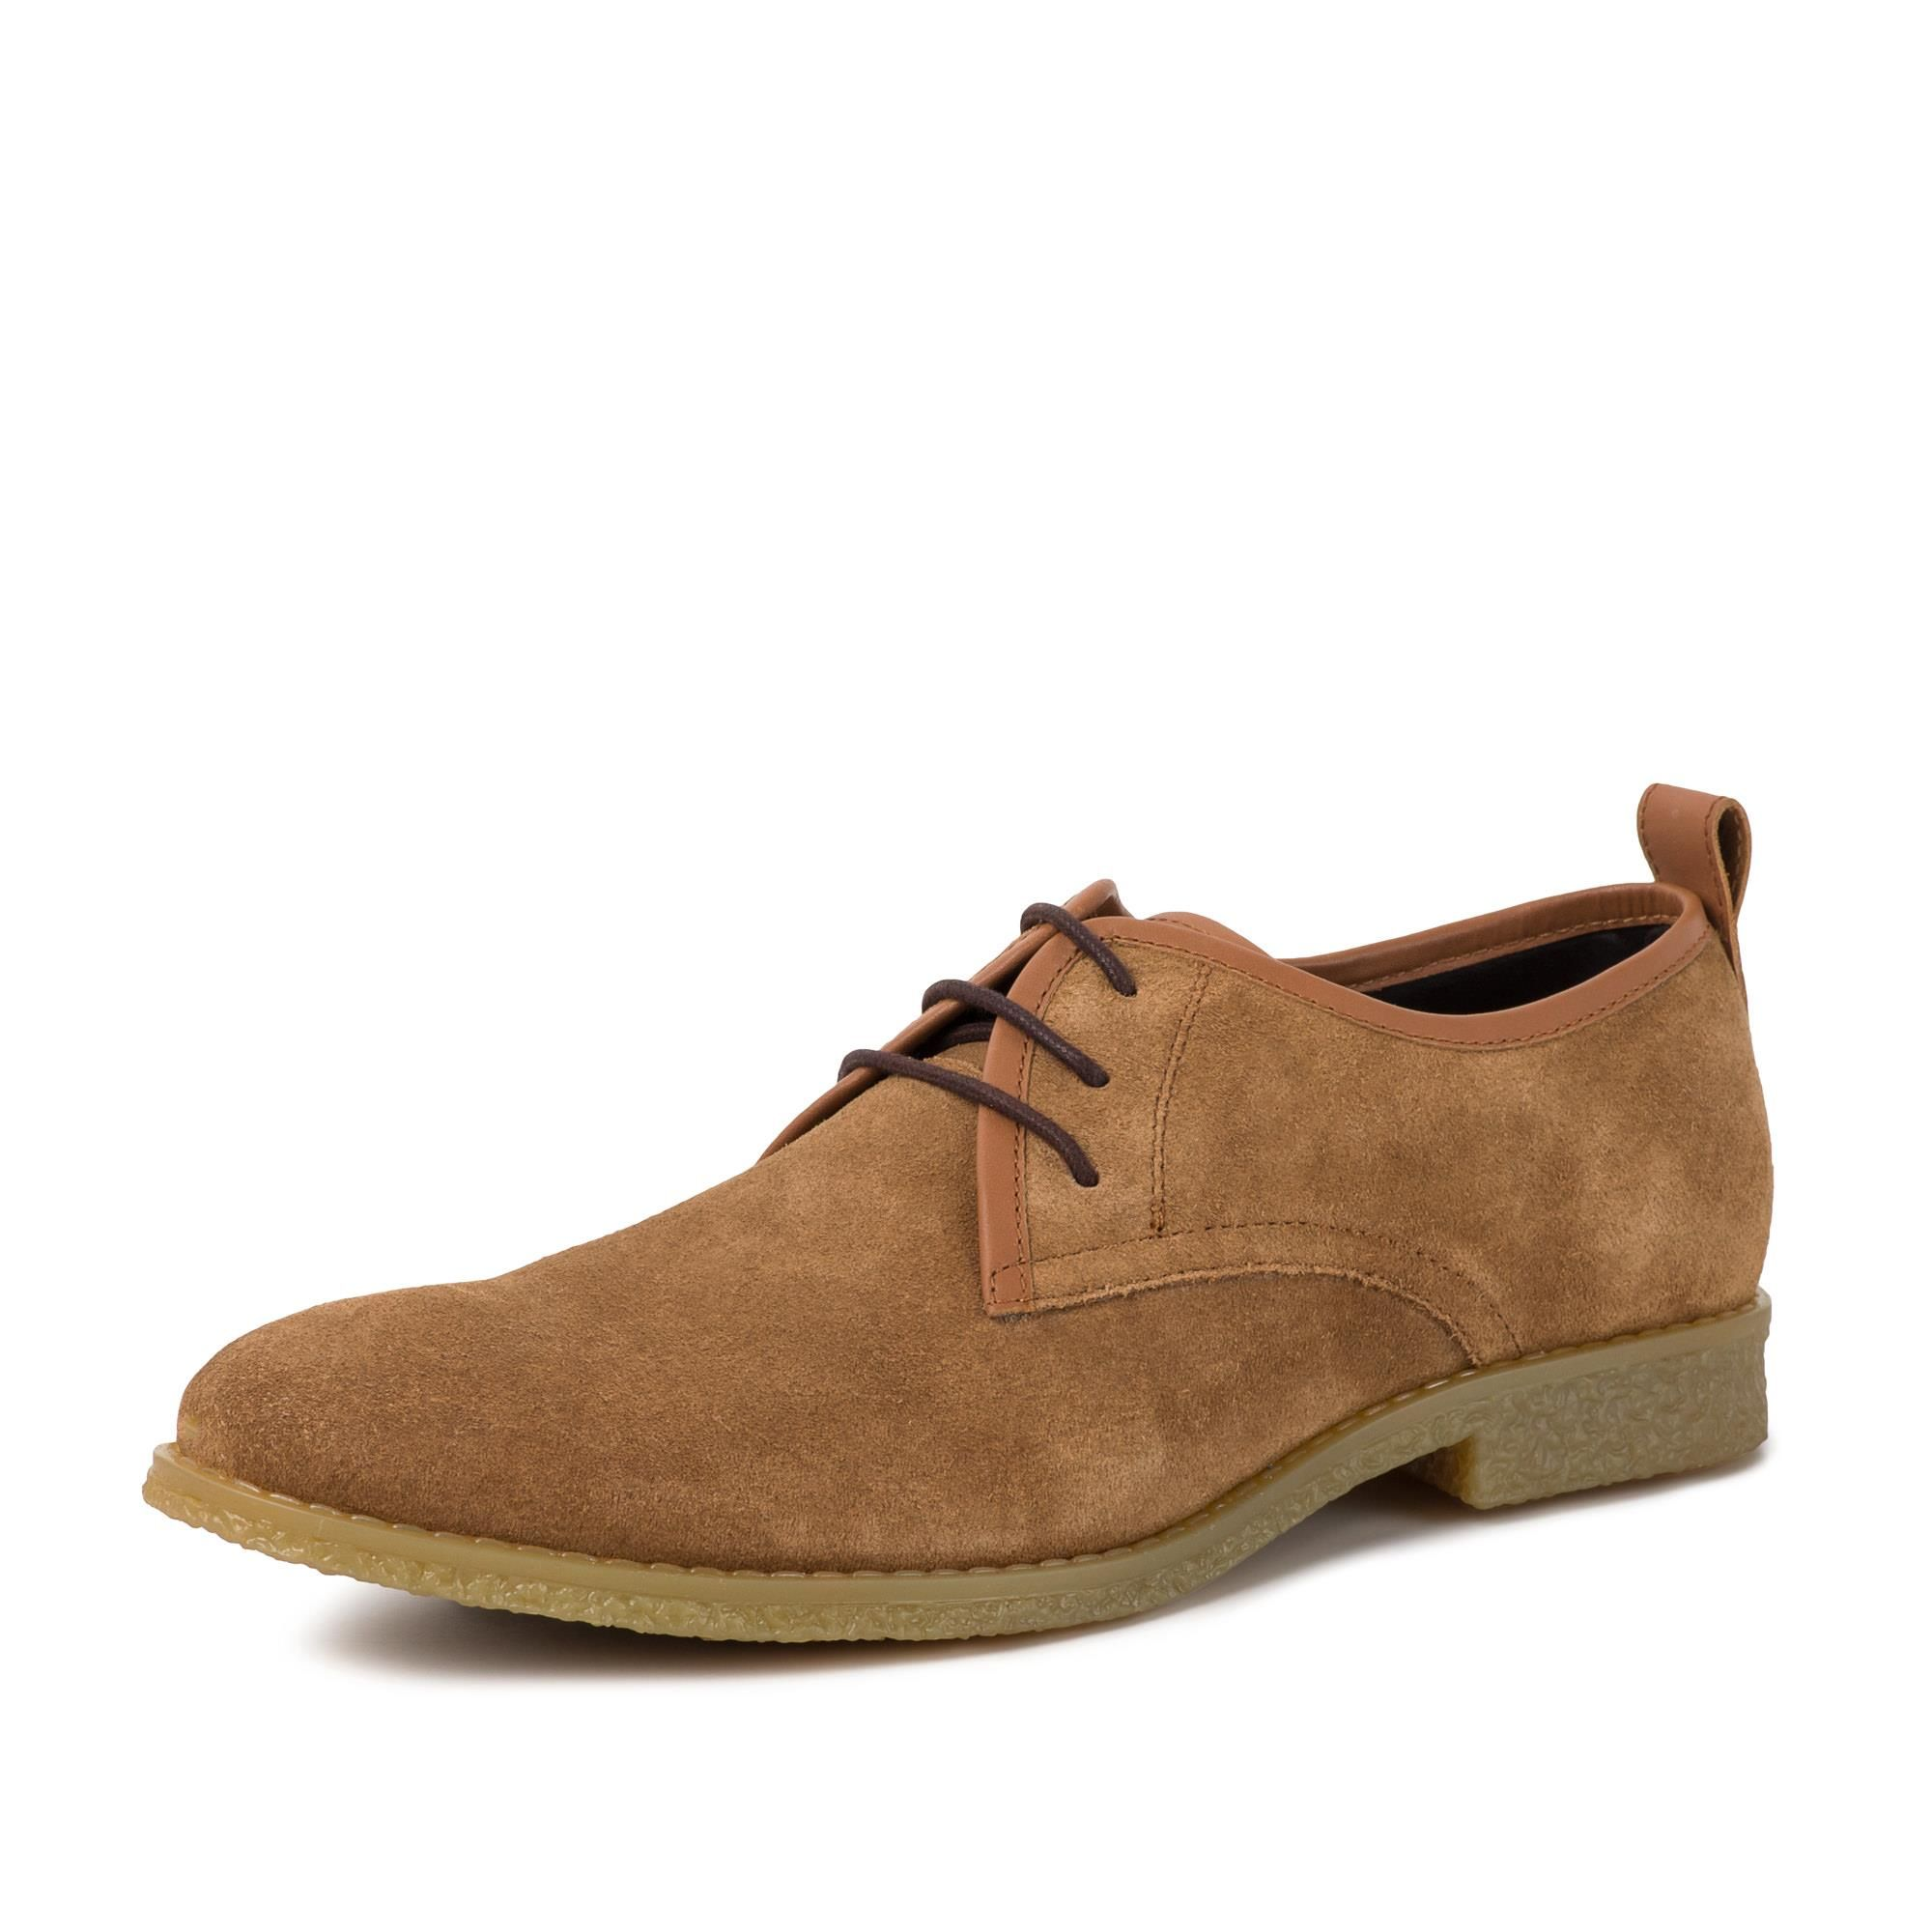 Redfoot Lewis Chestnut Suede Desert Shoes